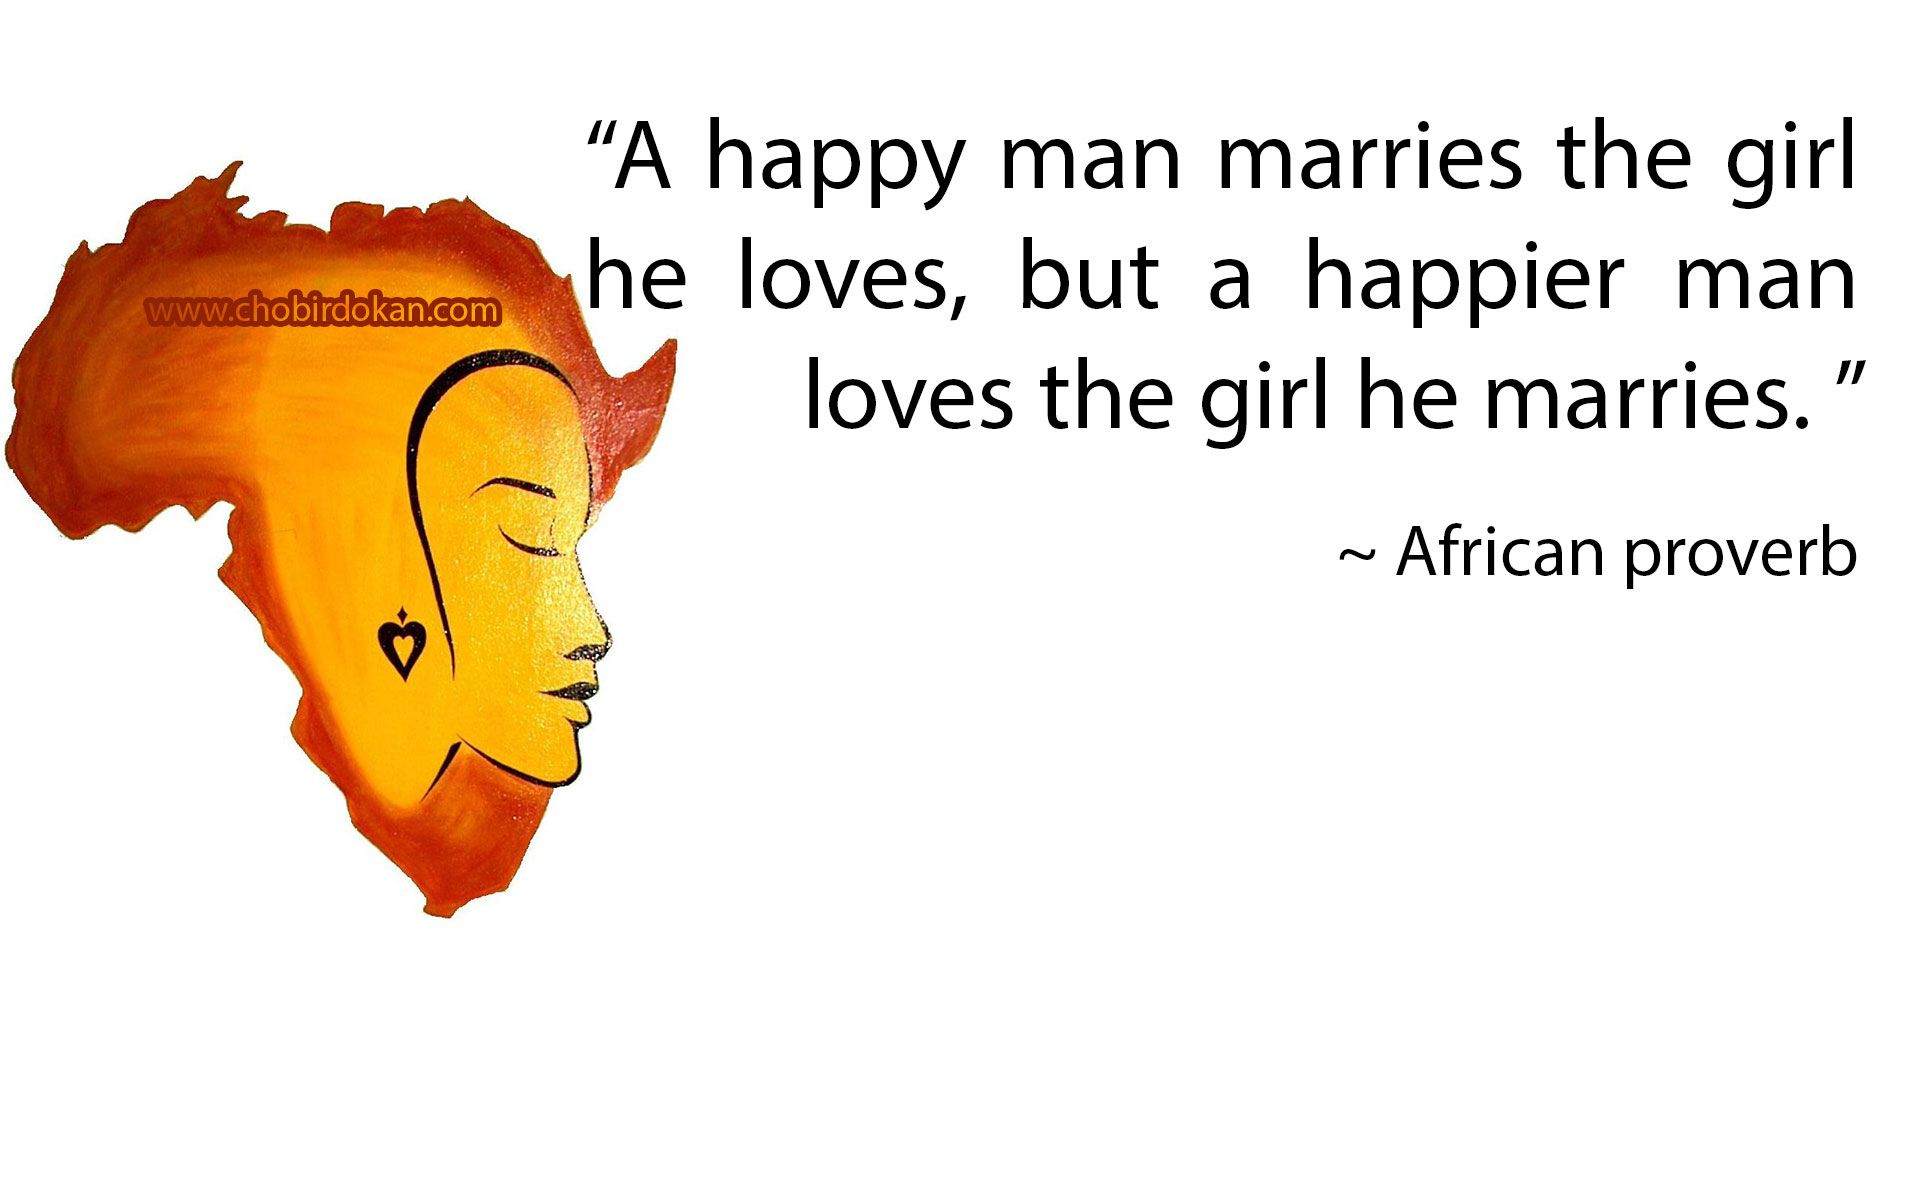 Ancient African Proverbs About Love That Will Make You Think-love